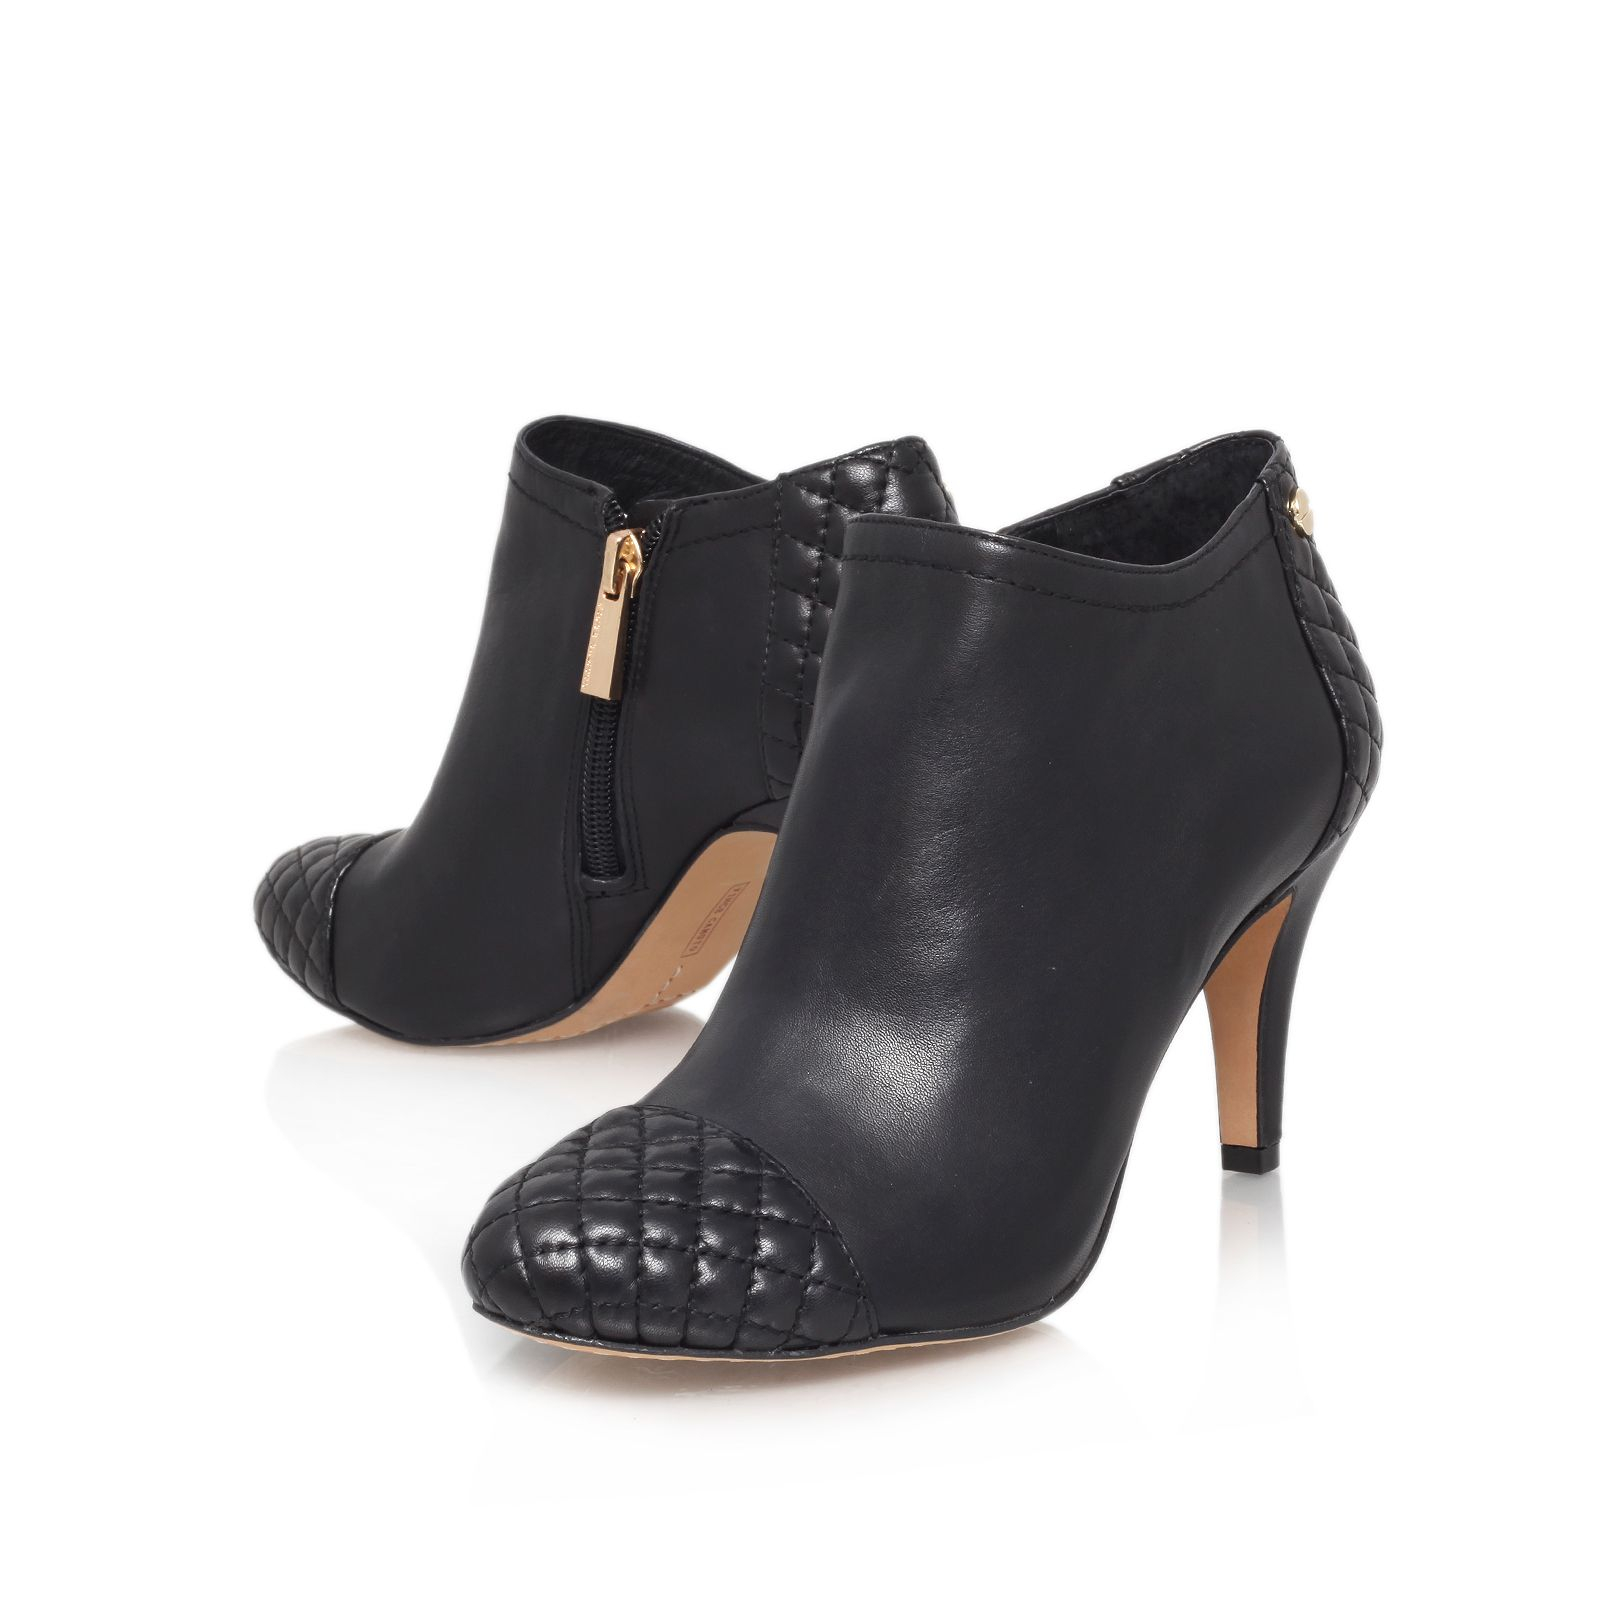 Vince Camuto Valentina High Heel Ankle Boots In Black Lyst